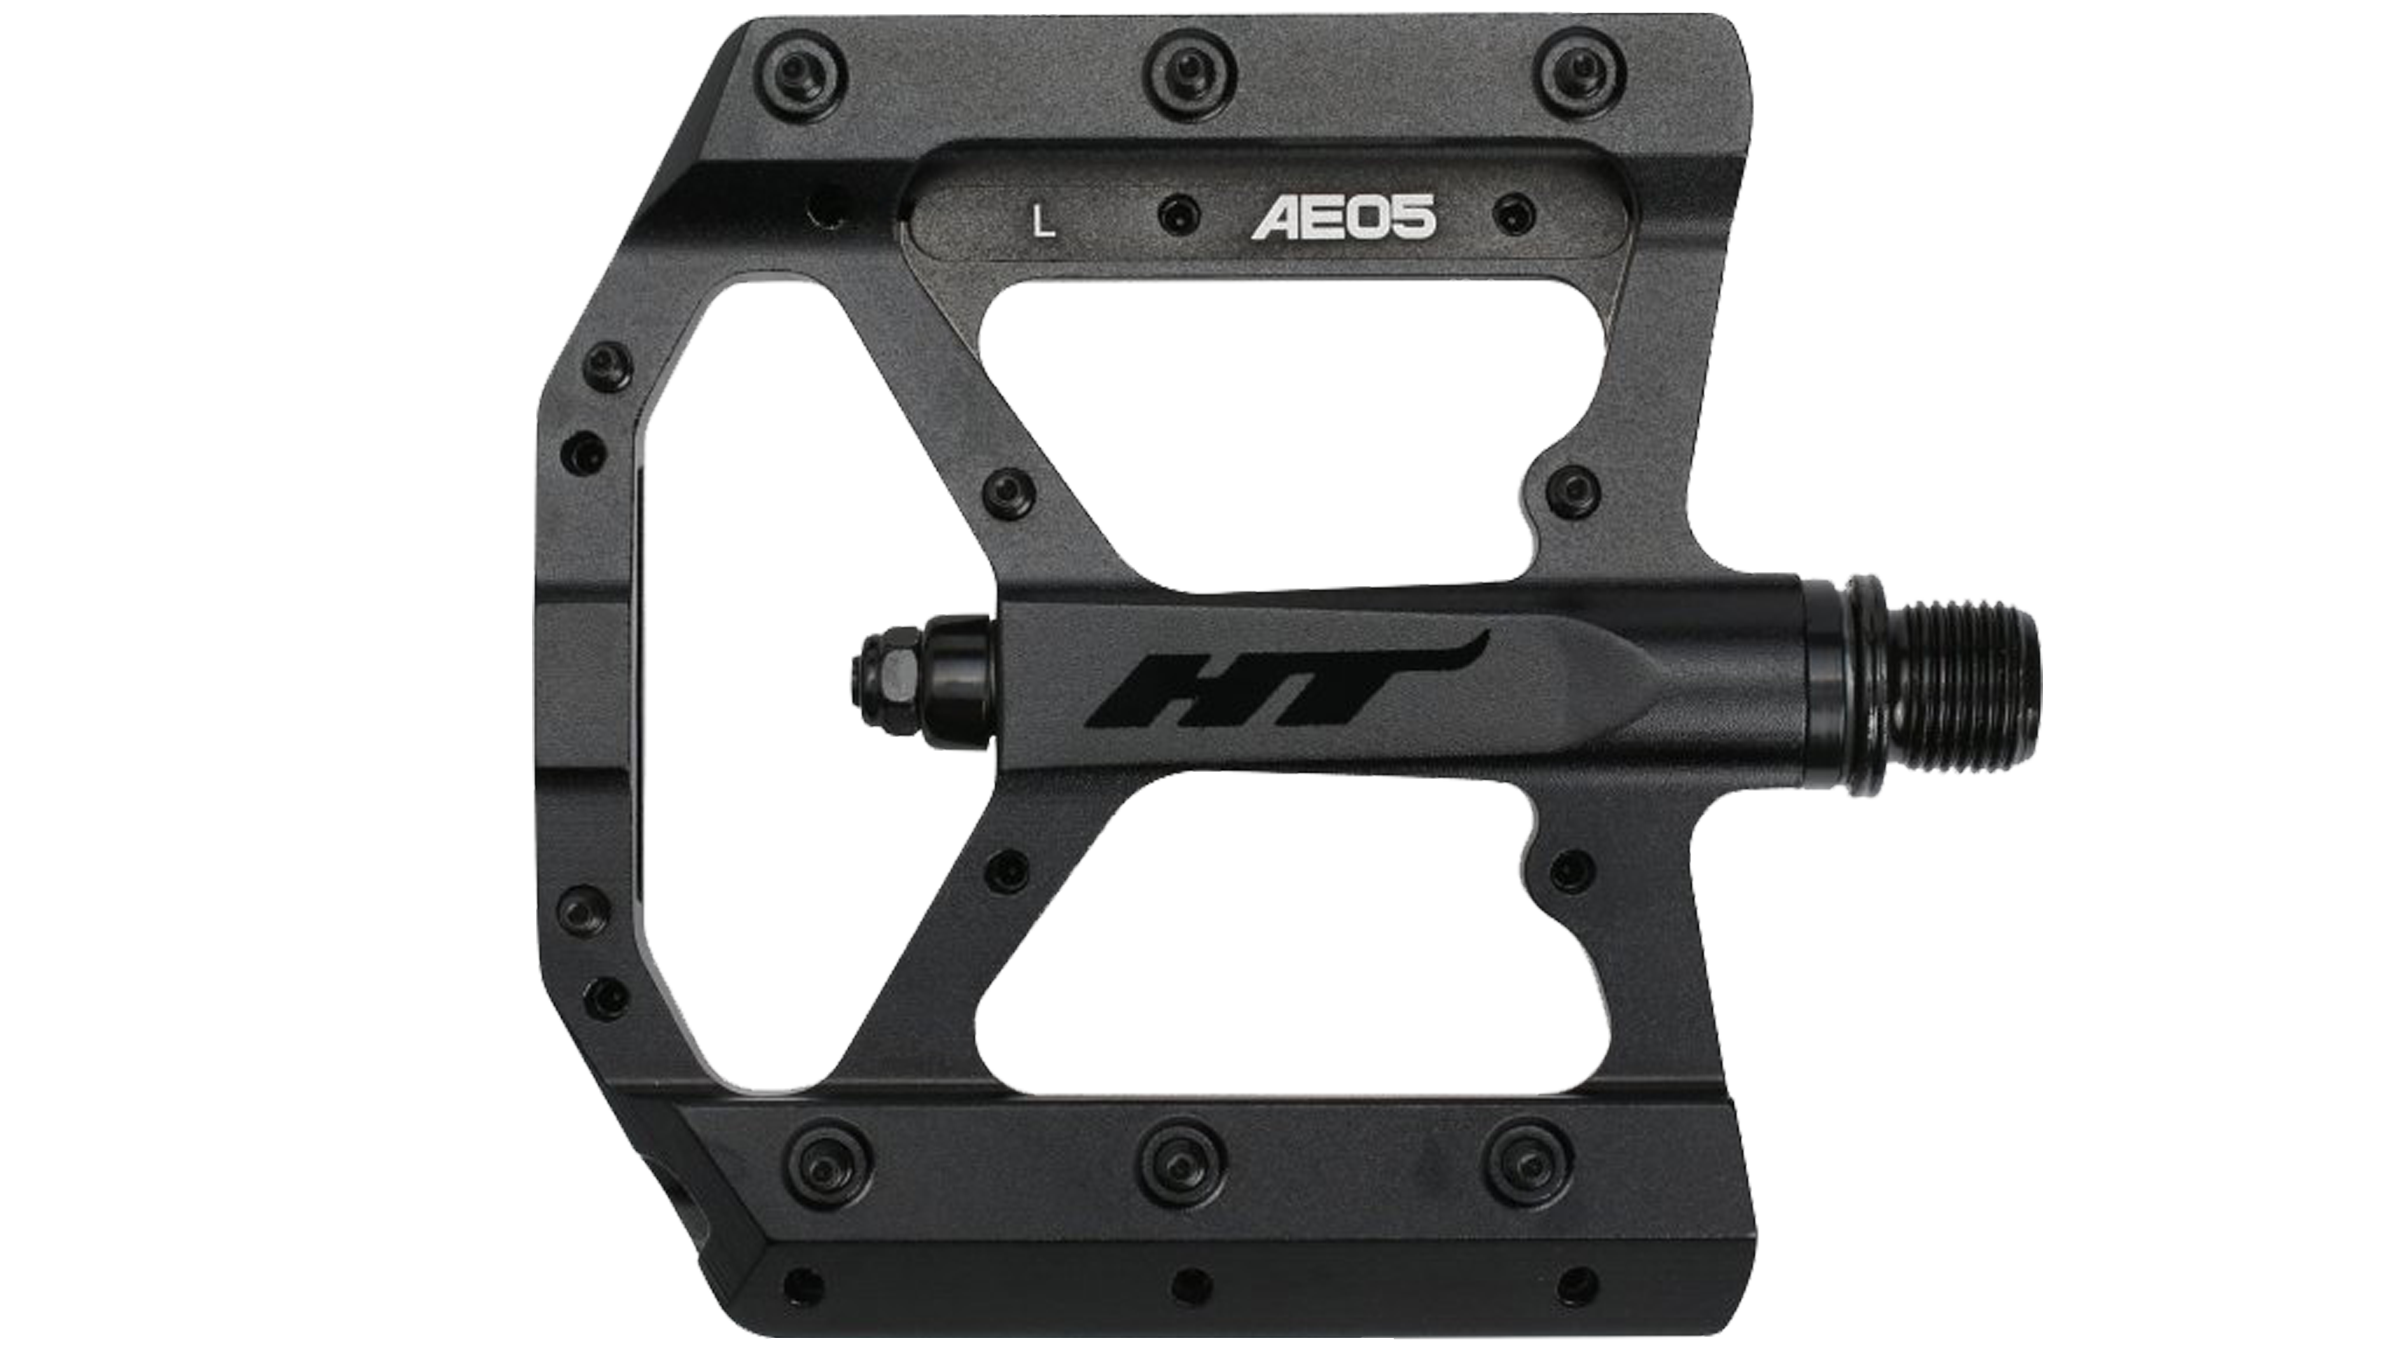 Pedale HT COMPONENTS AE05